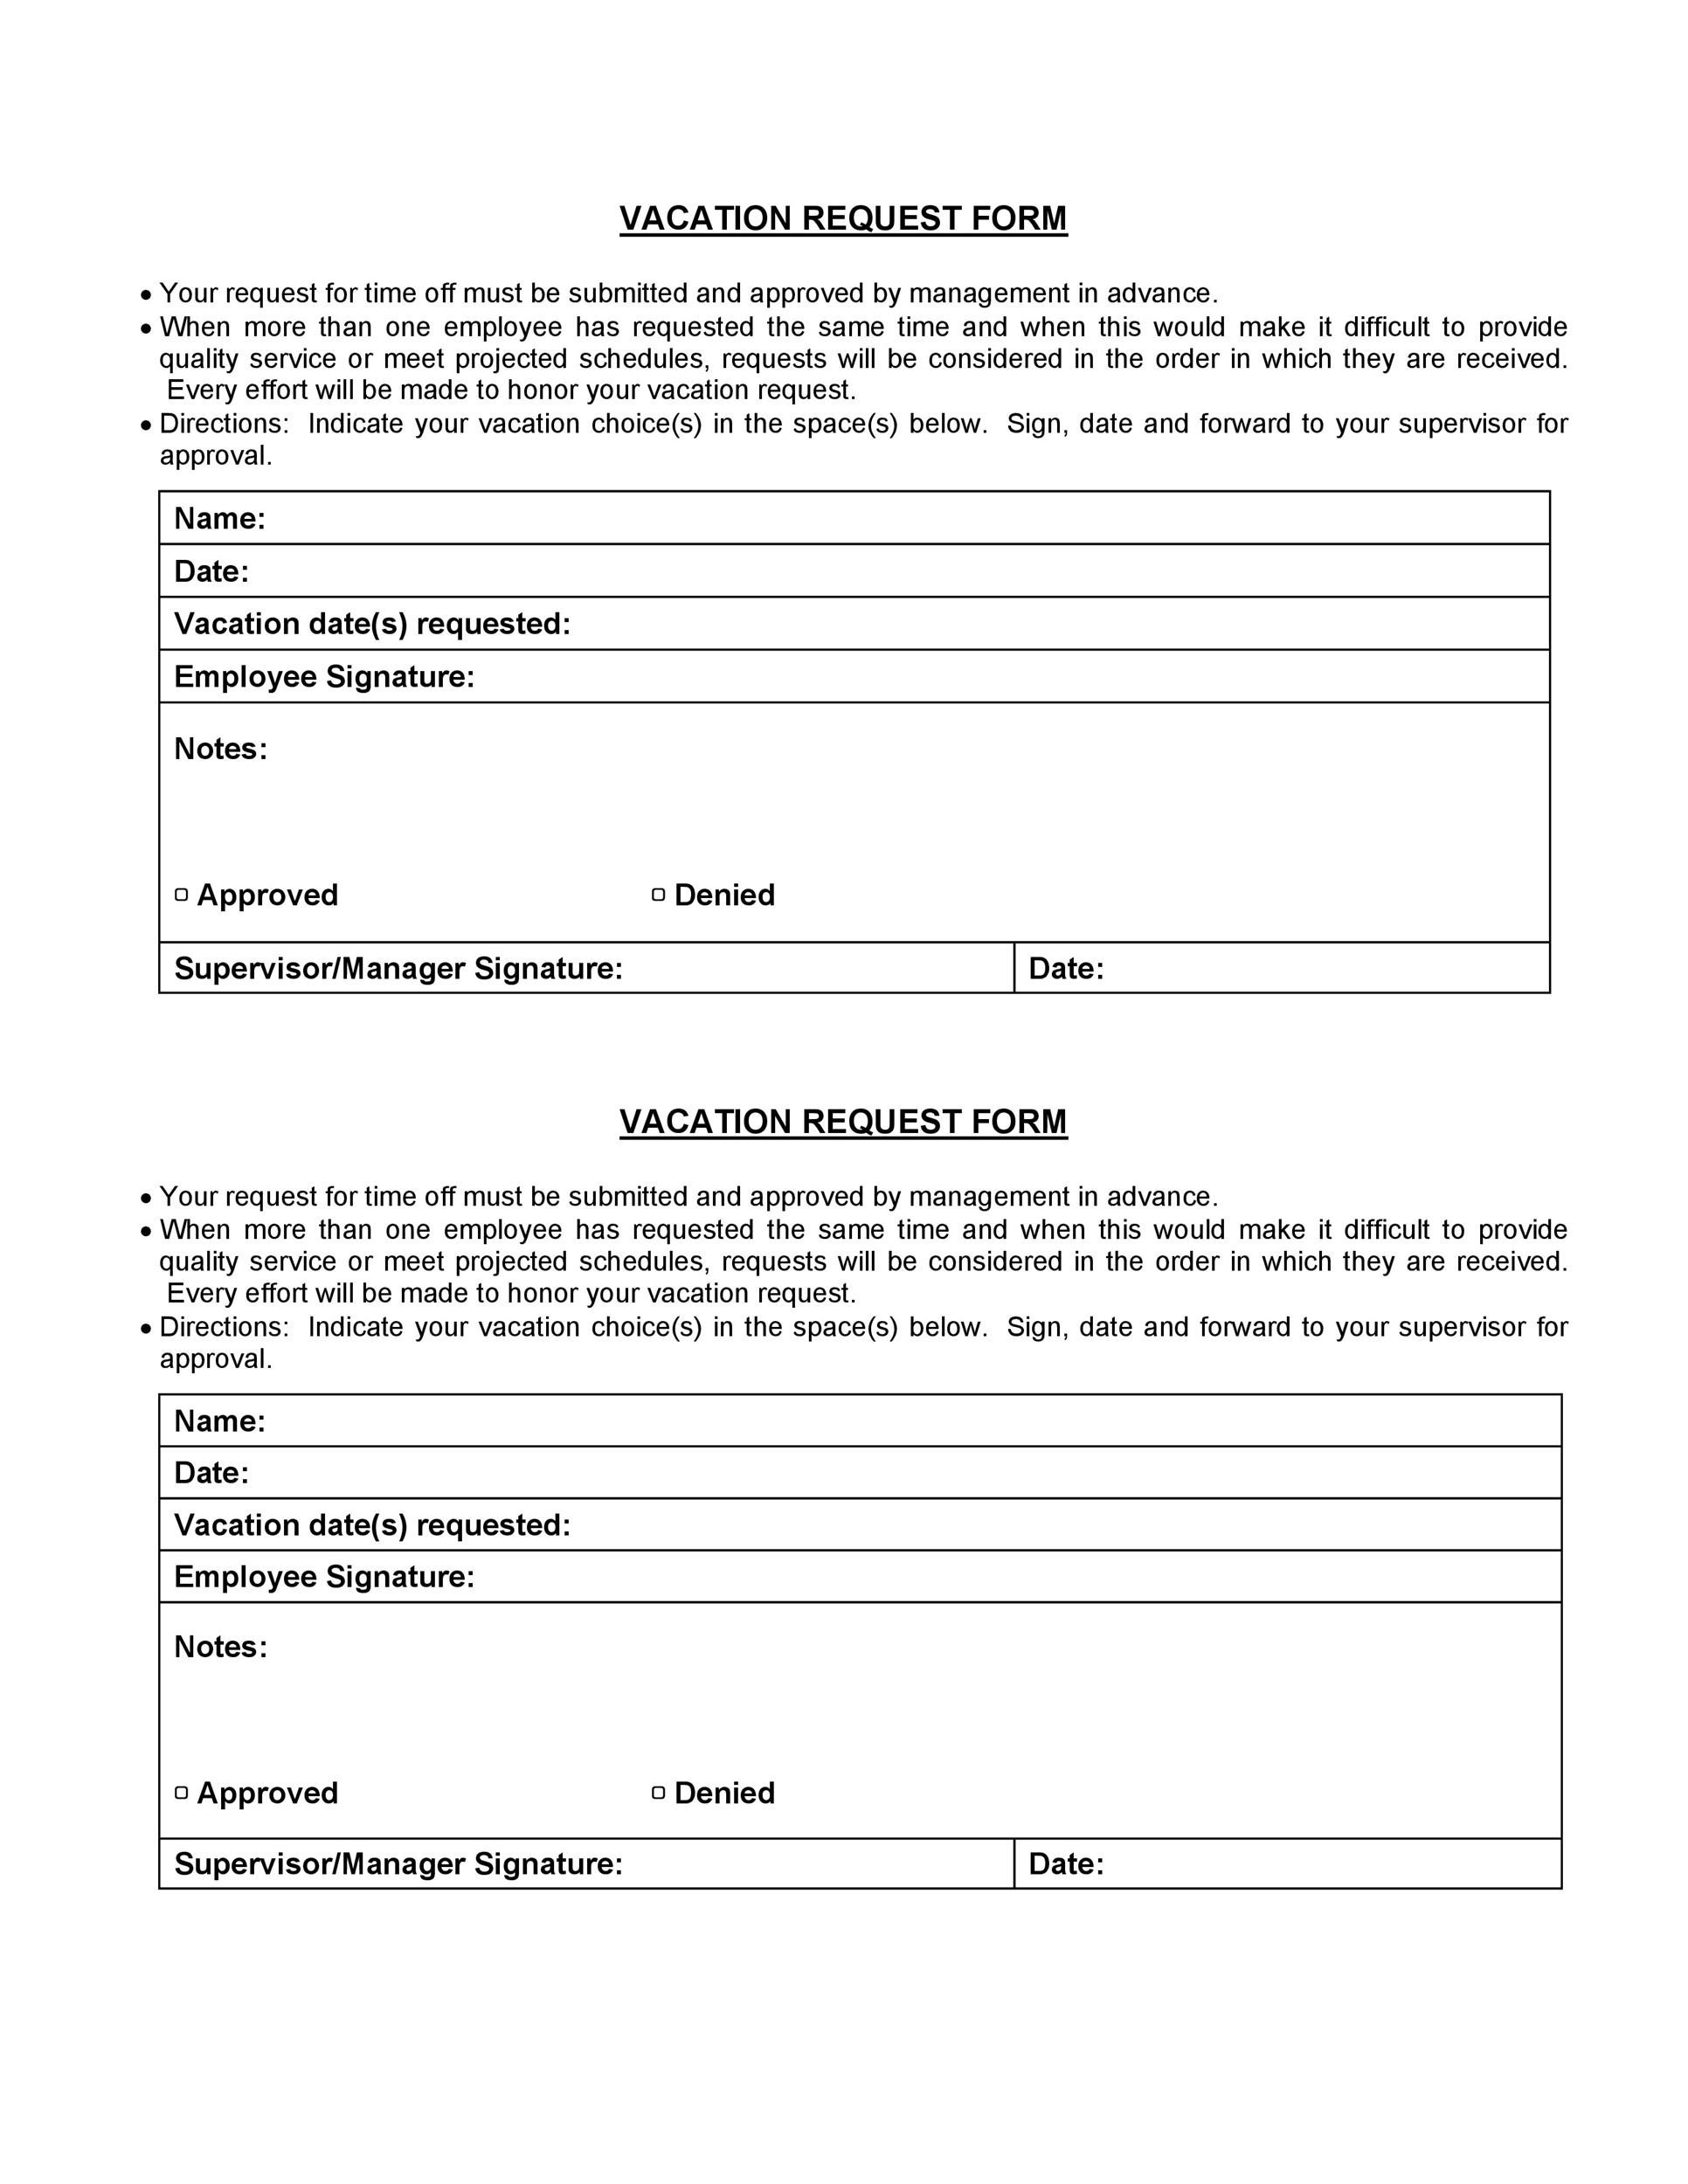 50 Professional Employee Vacation Request Forms [Word]